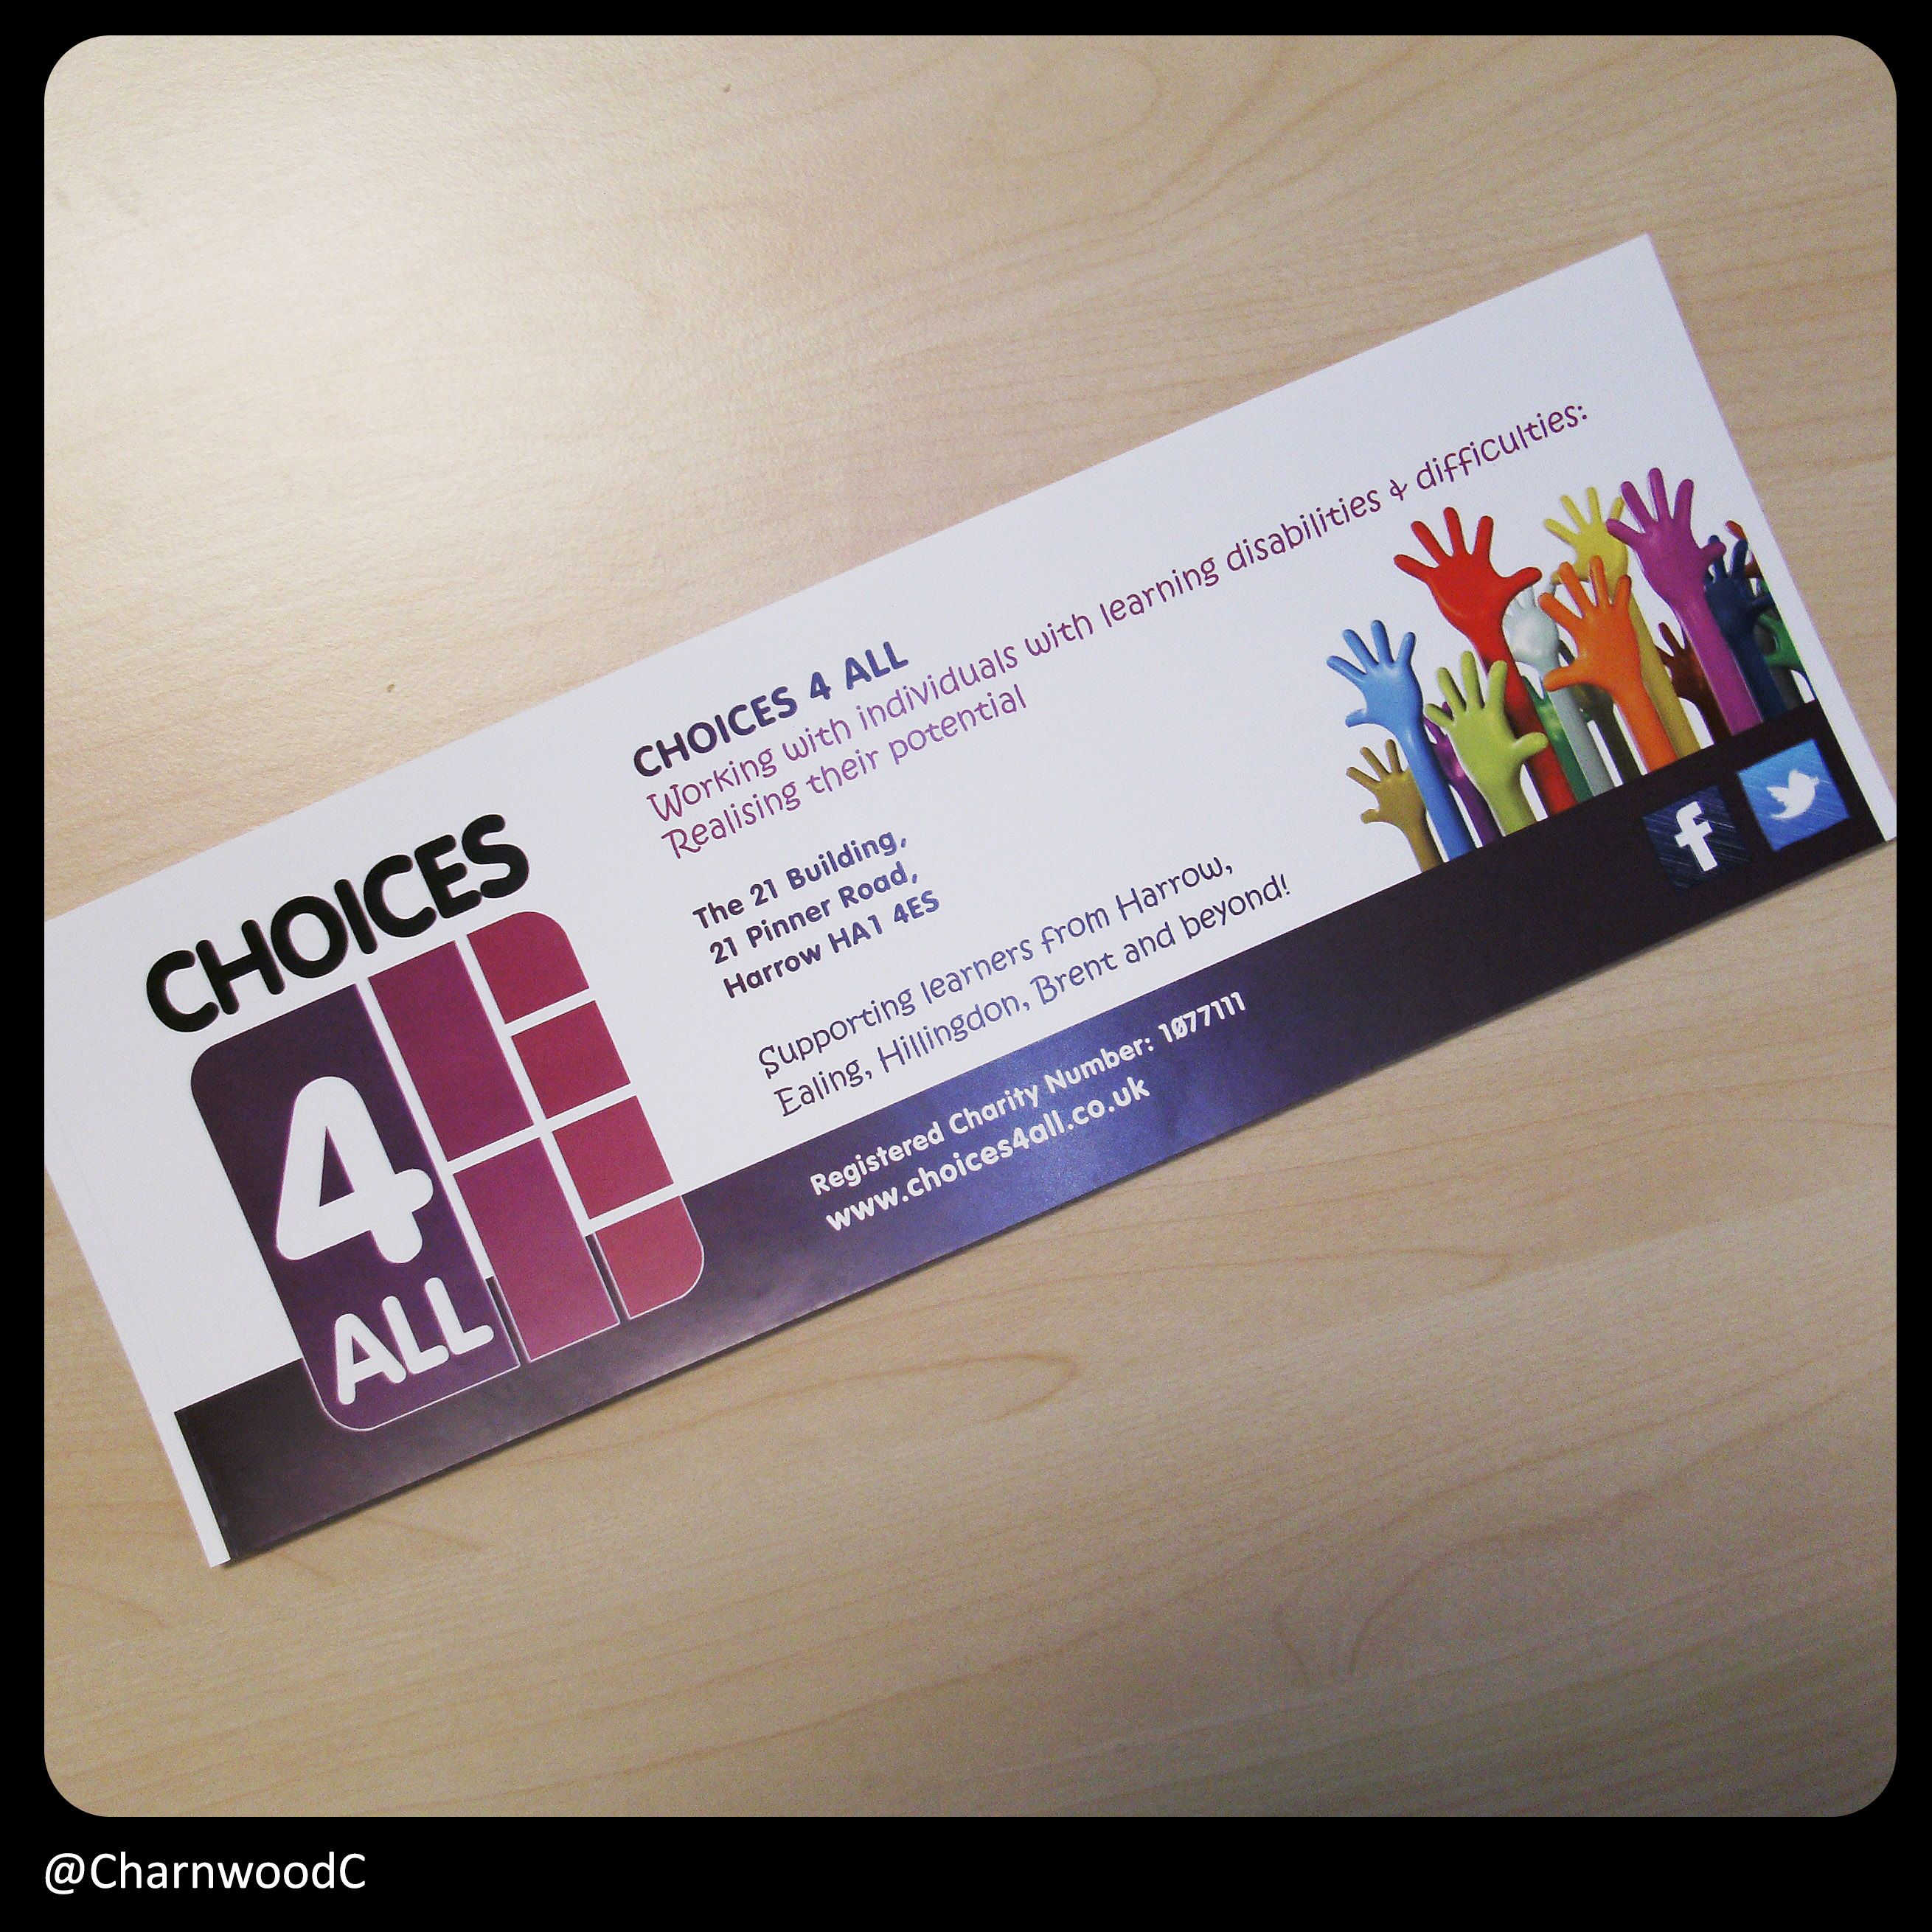 Custom printed collection box labels for choices 4 all a great custom printed collection box labels for choices 4 all a great charity choices reheart Images